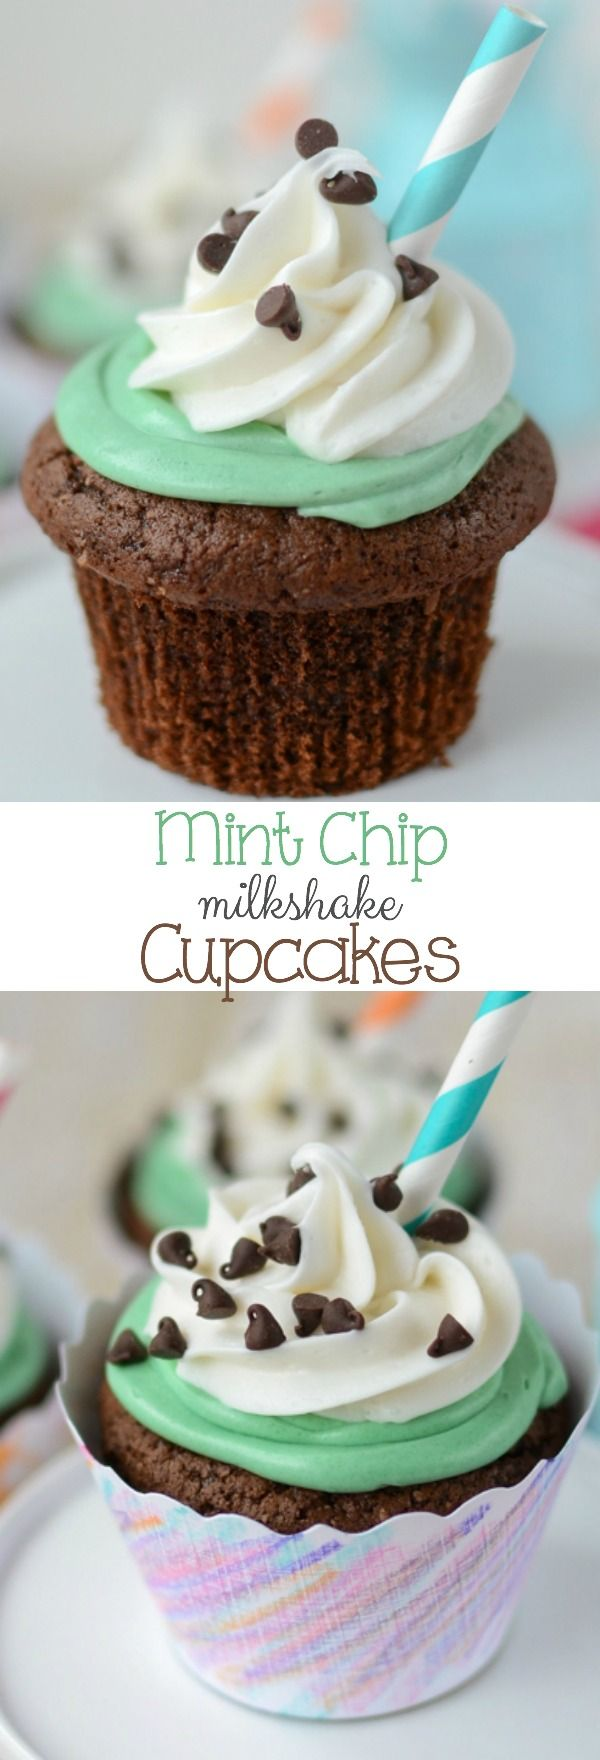 Mint Chip Milkshake Cupcakes - these cupcakes are so fun to create and they're so easy your kids can help!